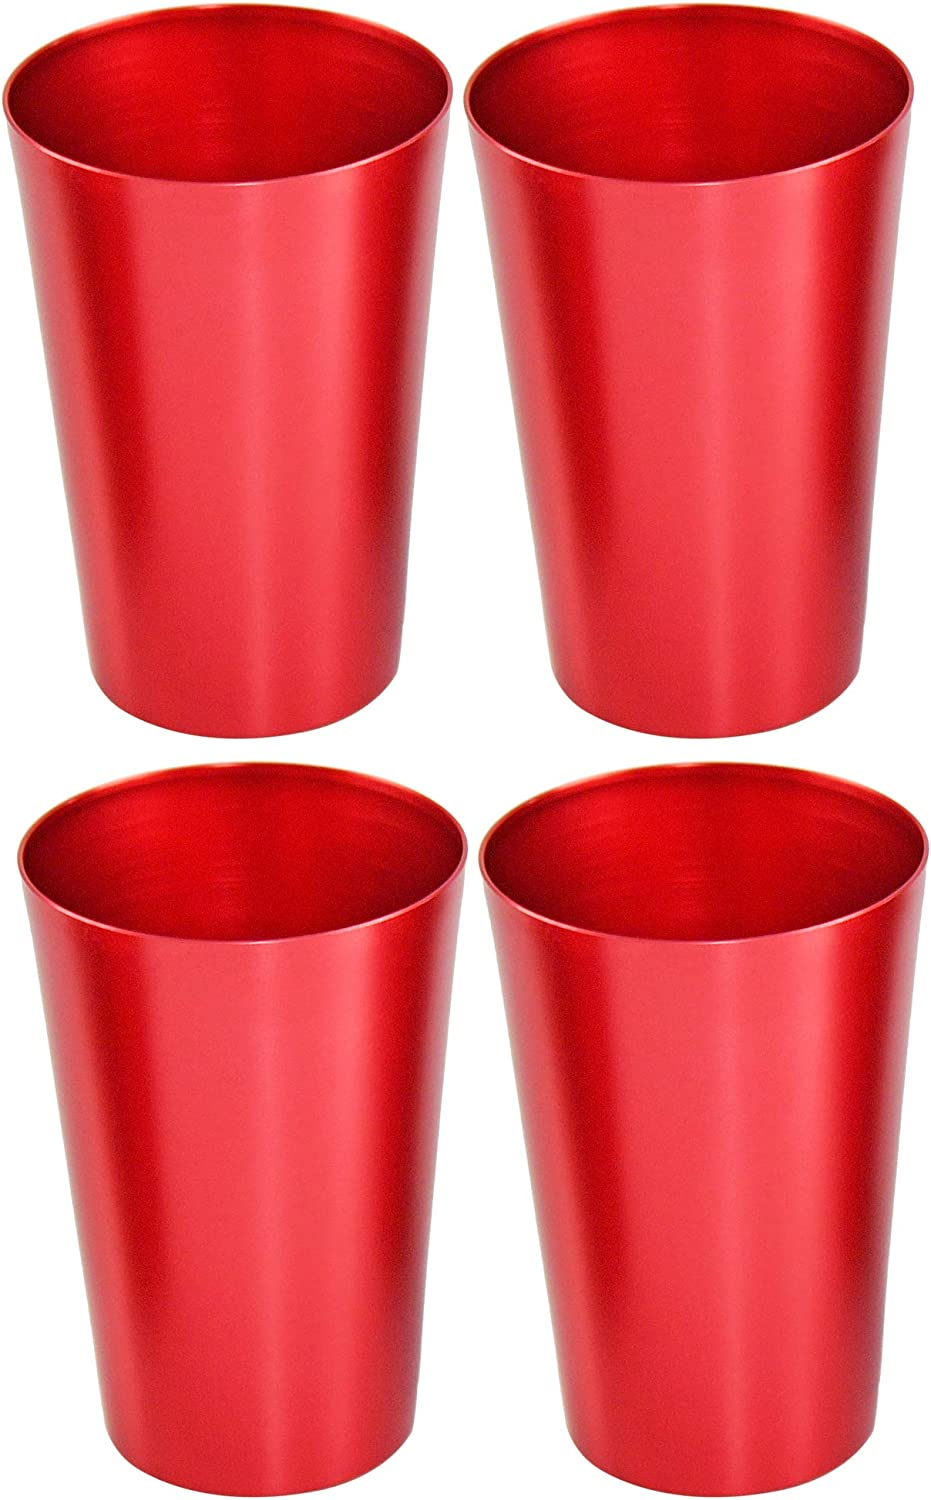 HOME-X Colorful Aluminum Drinking Cups Set of 4, Colored Metal Tumblers, Shatter Resistant, Stackable, Metallic Red